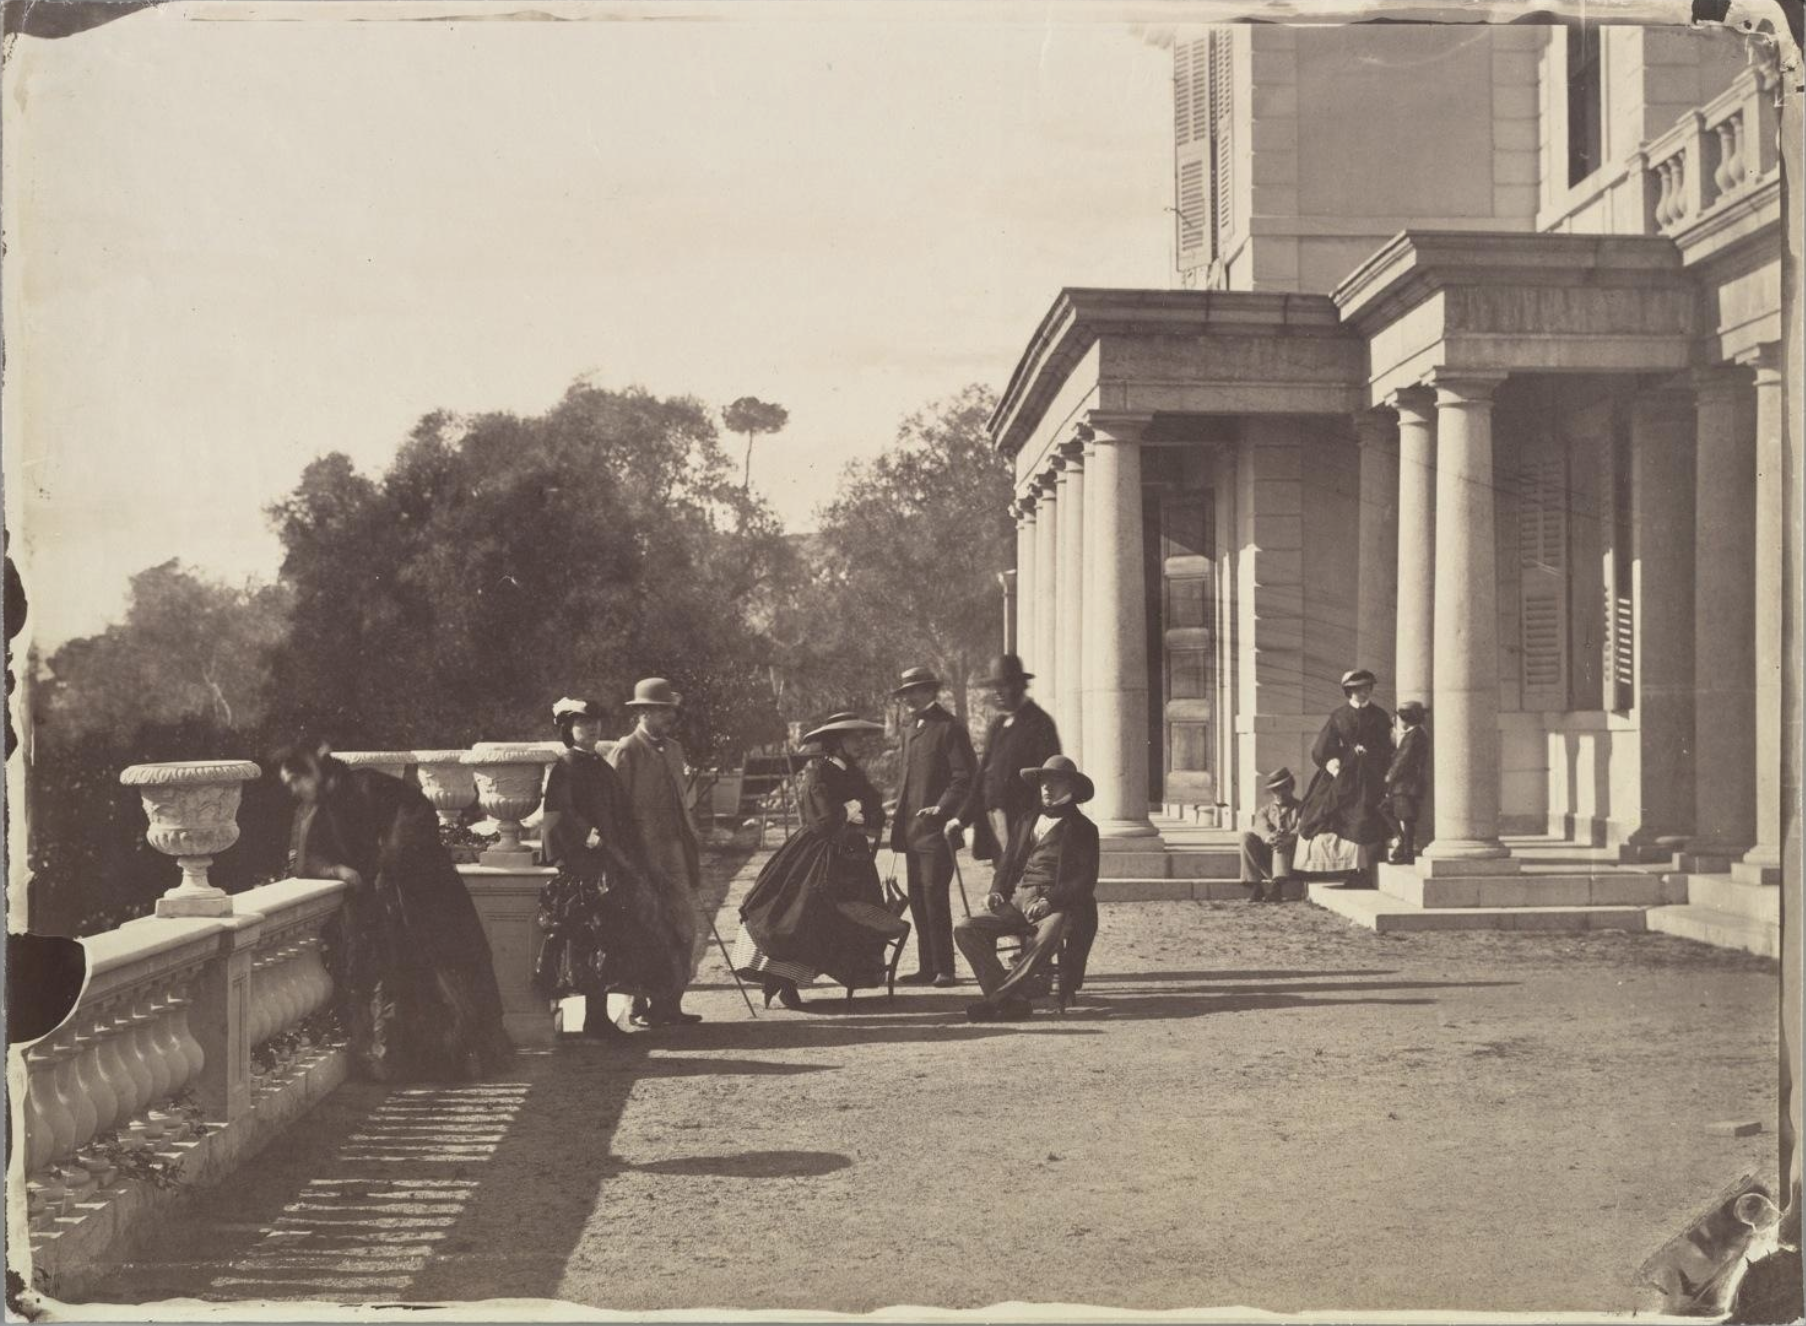 Lord Brougham & his family, Cannes / Charles Négre (credit: Metropolitan Museum of Art)